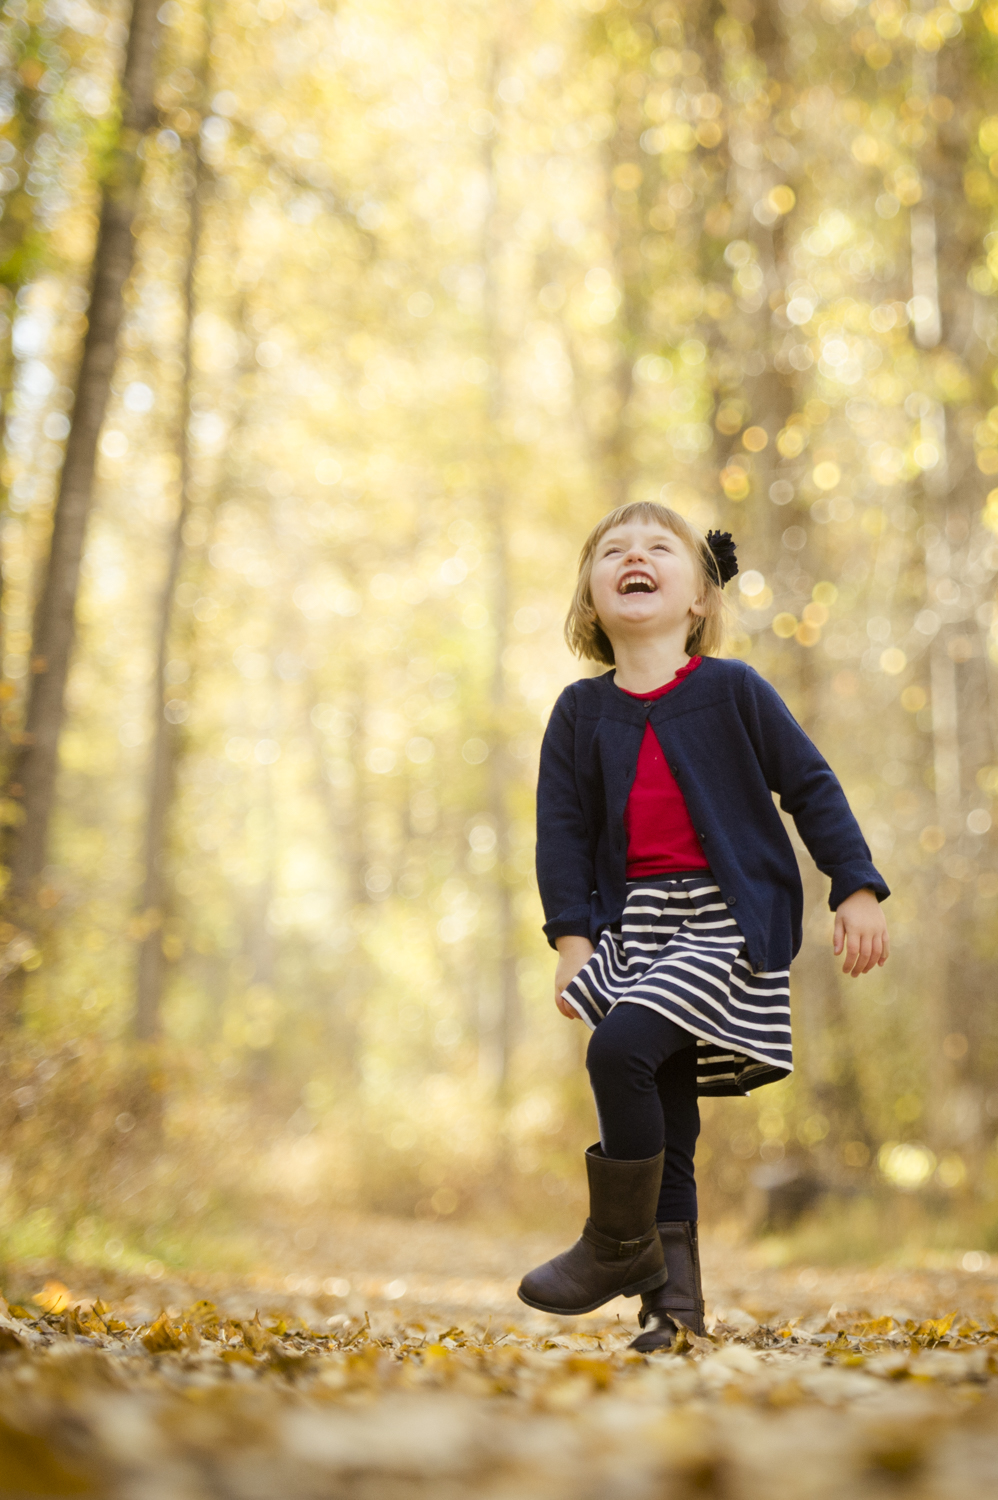 fall_lifestyle_family_leaves_candid_playing-015.jpg